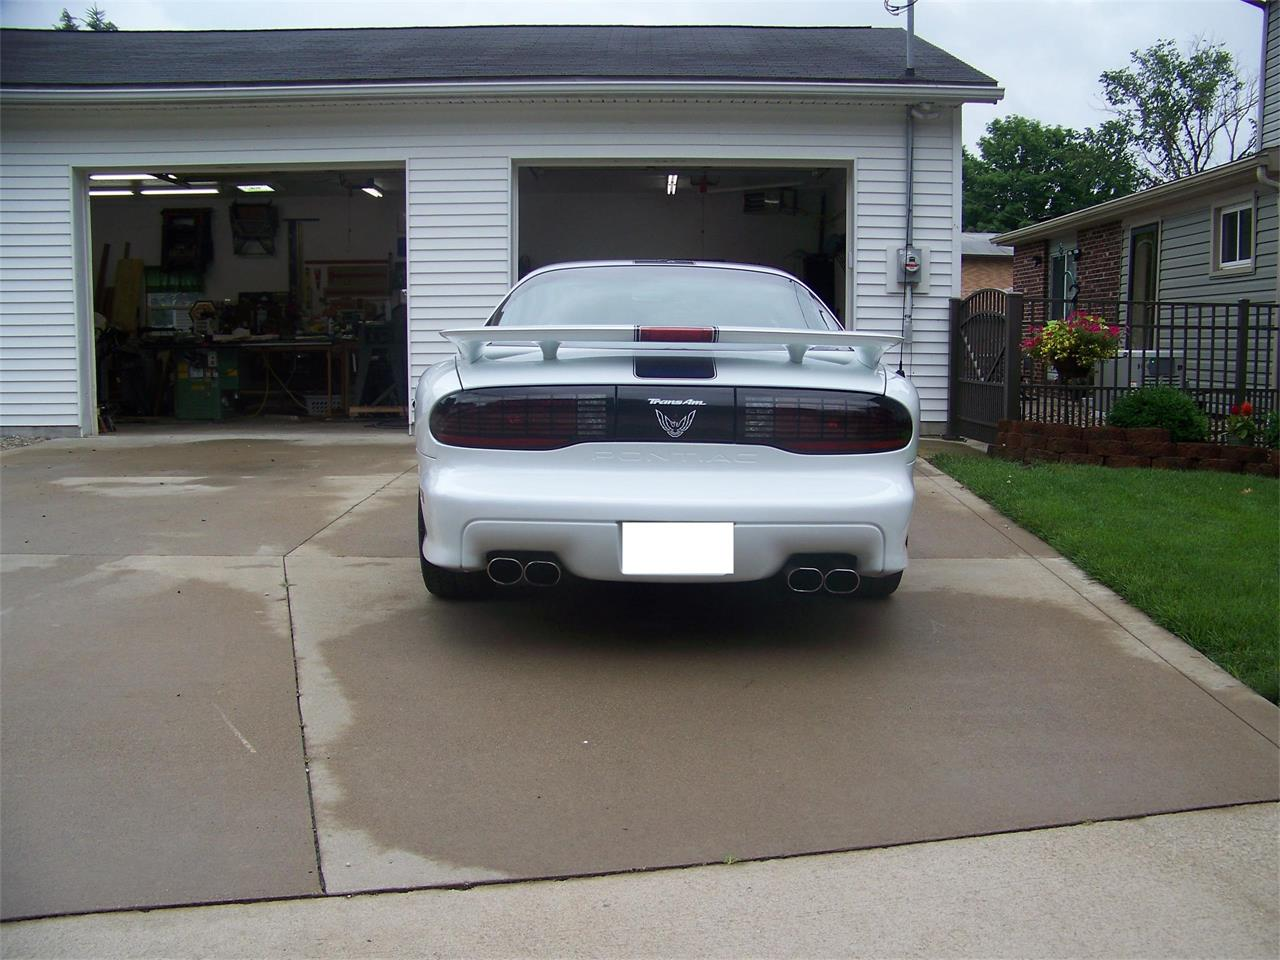 Large Picture of '94 Pontiac Firebird Trans Am located in New Philadelphia Ohio Offered by a Private Seller - NOQC